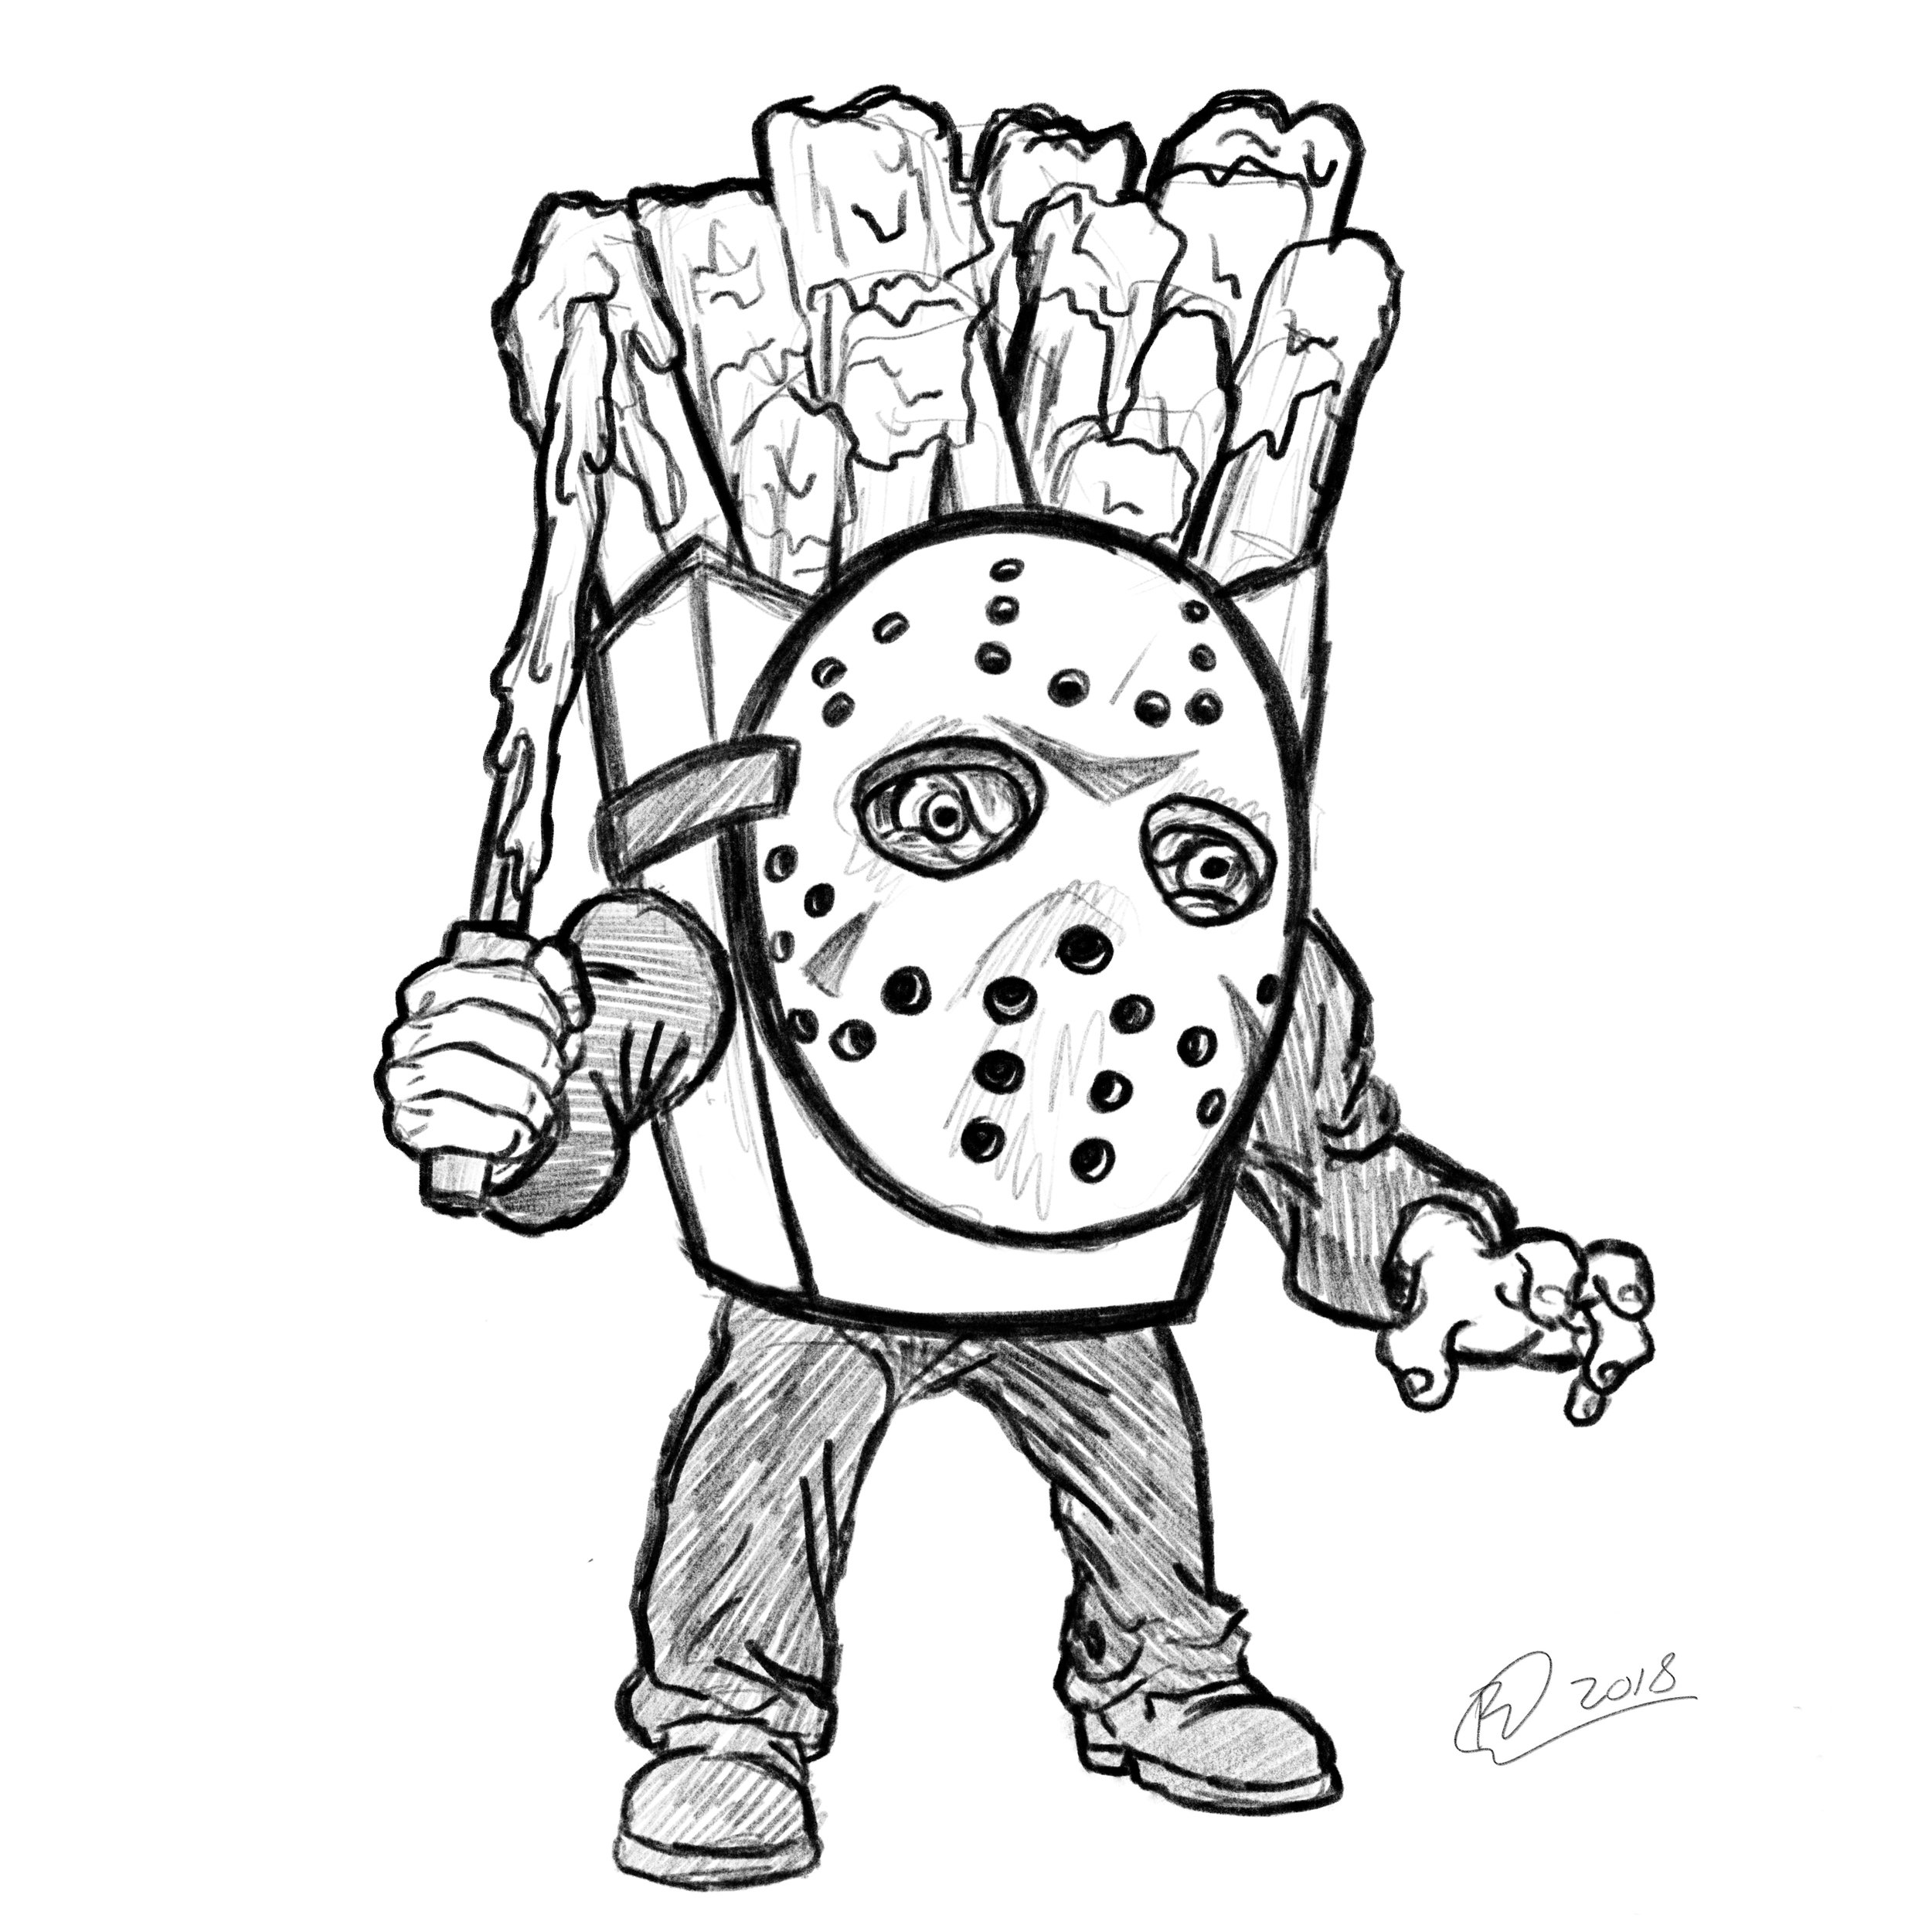 fryday-the13th-jason-movie-cartoon-character-illustration-toy-orozco-design-sketch.JPG